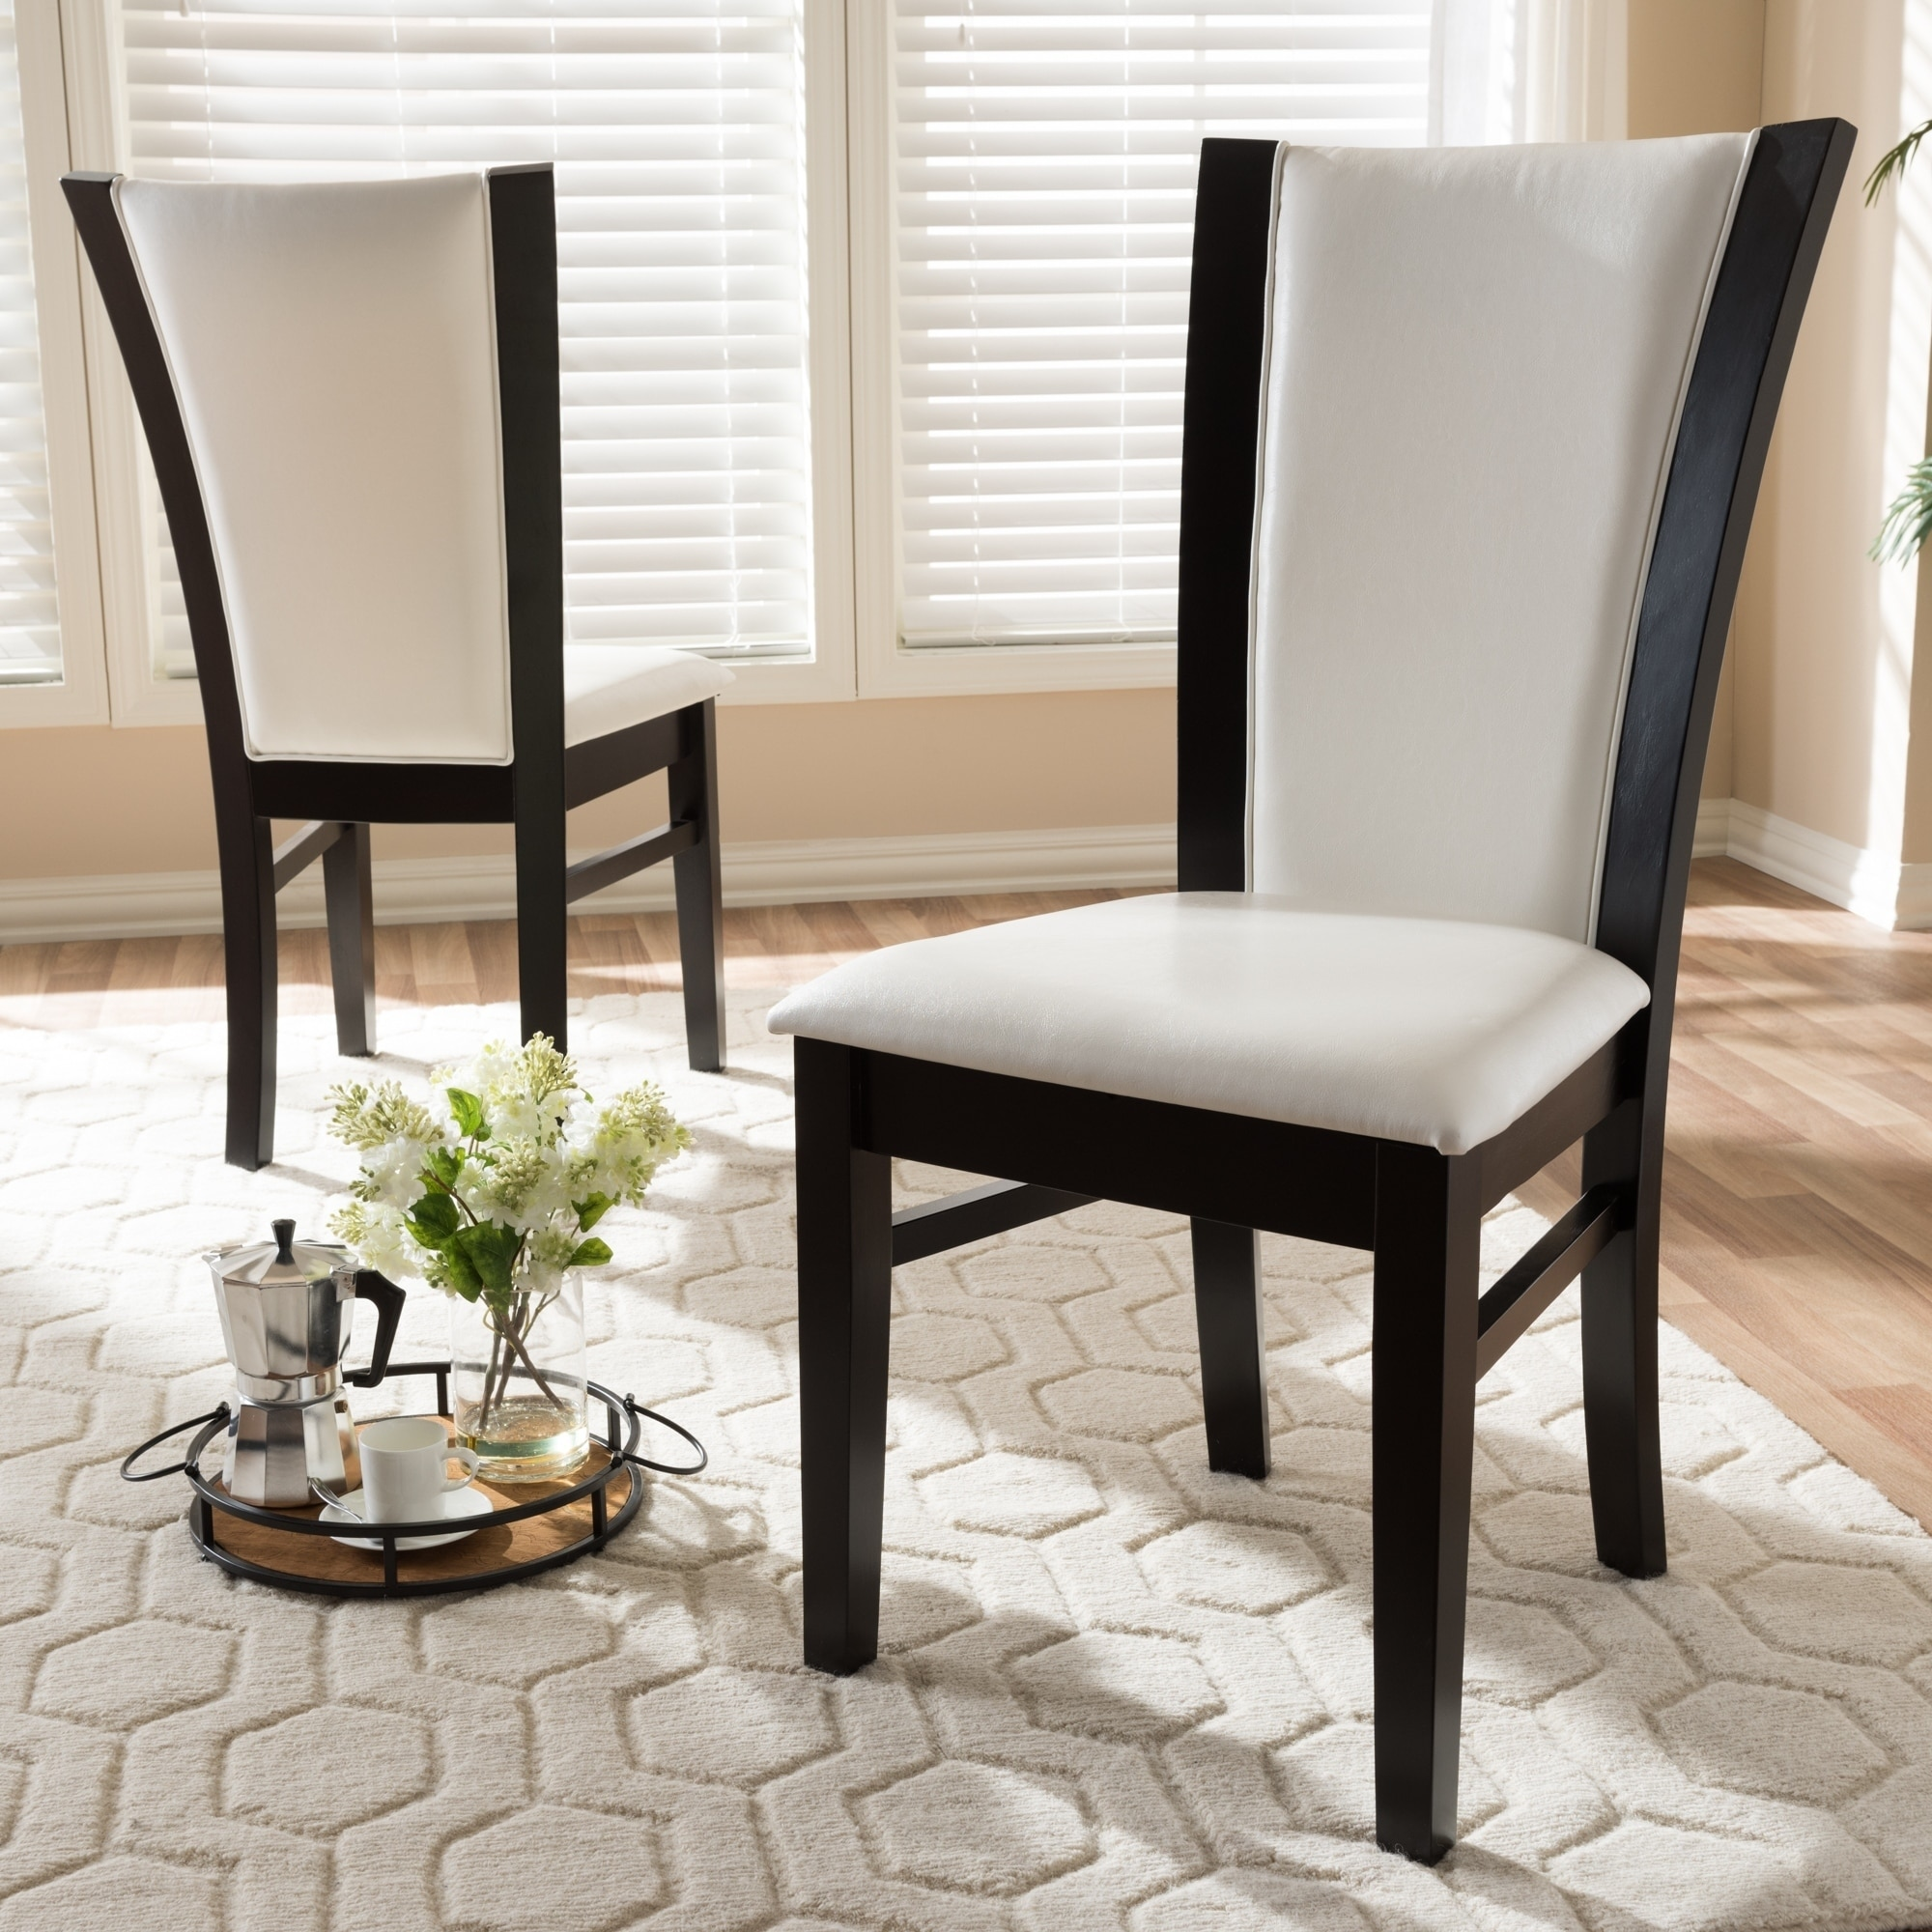 Baxton Studio Contemporary White Faux Leather Dining Chair